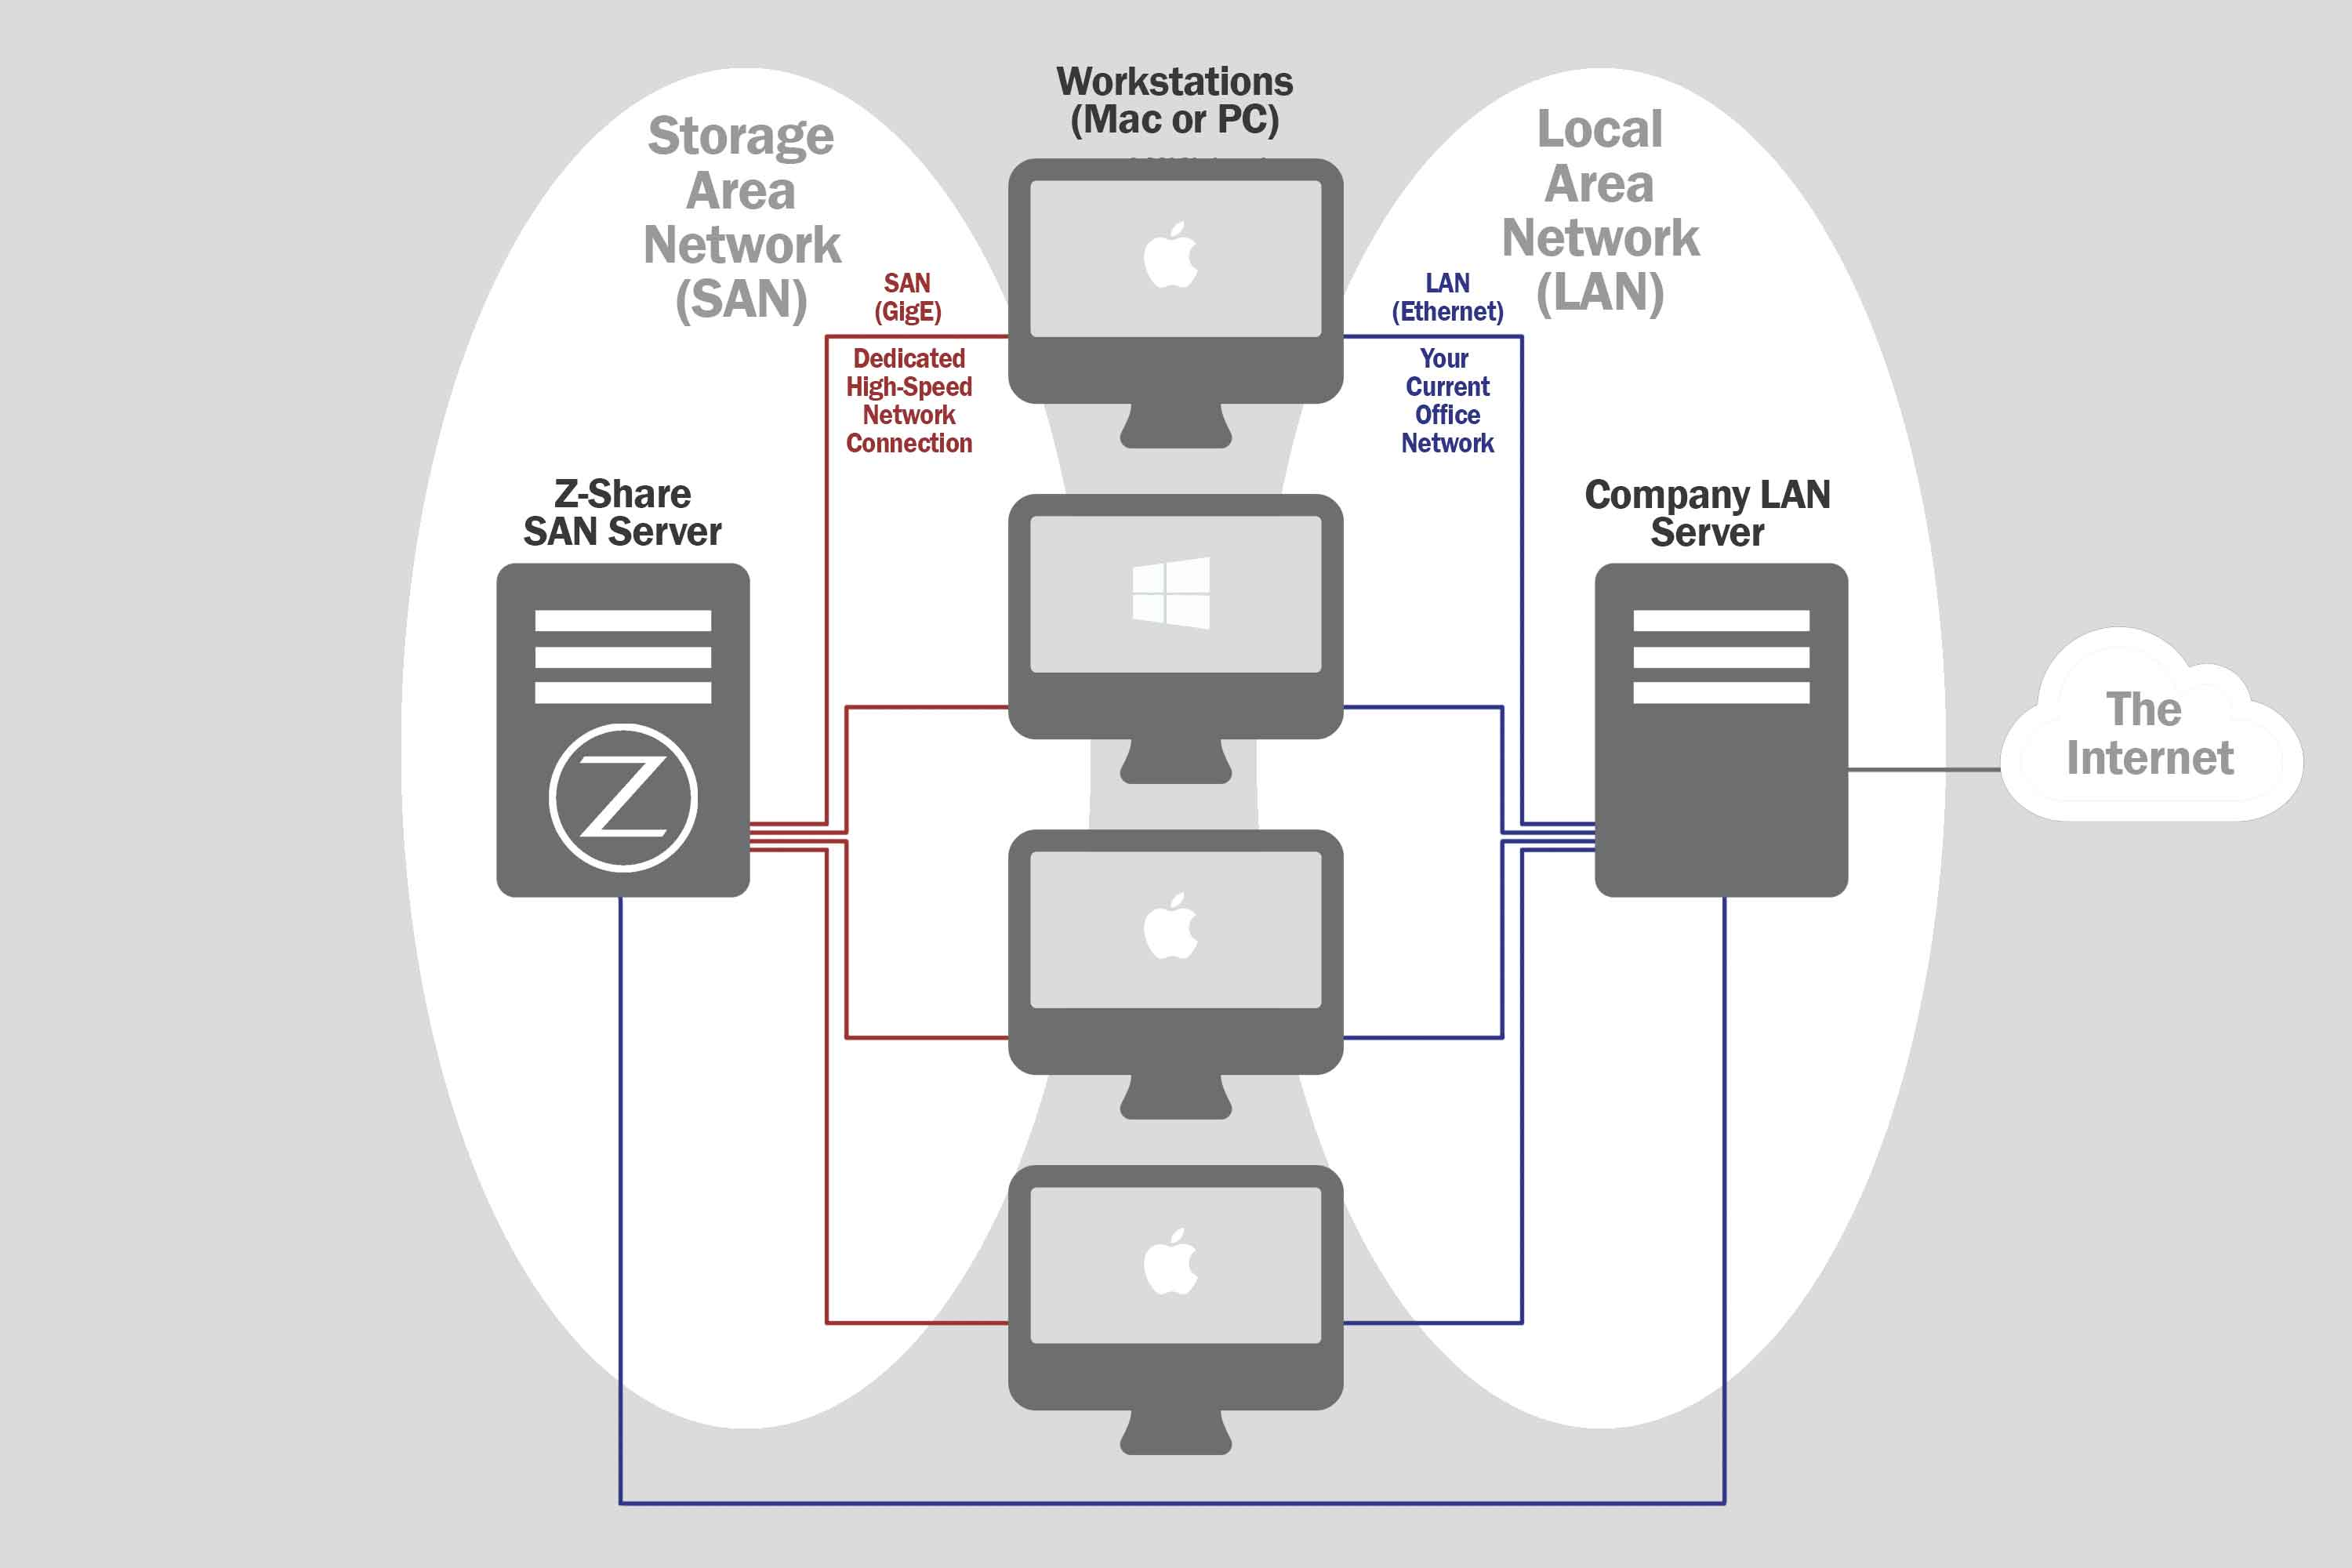 Z Share Network Diagram Systems Inc 2